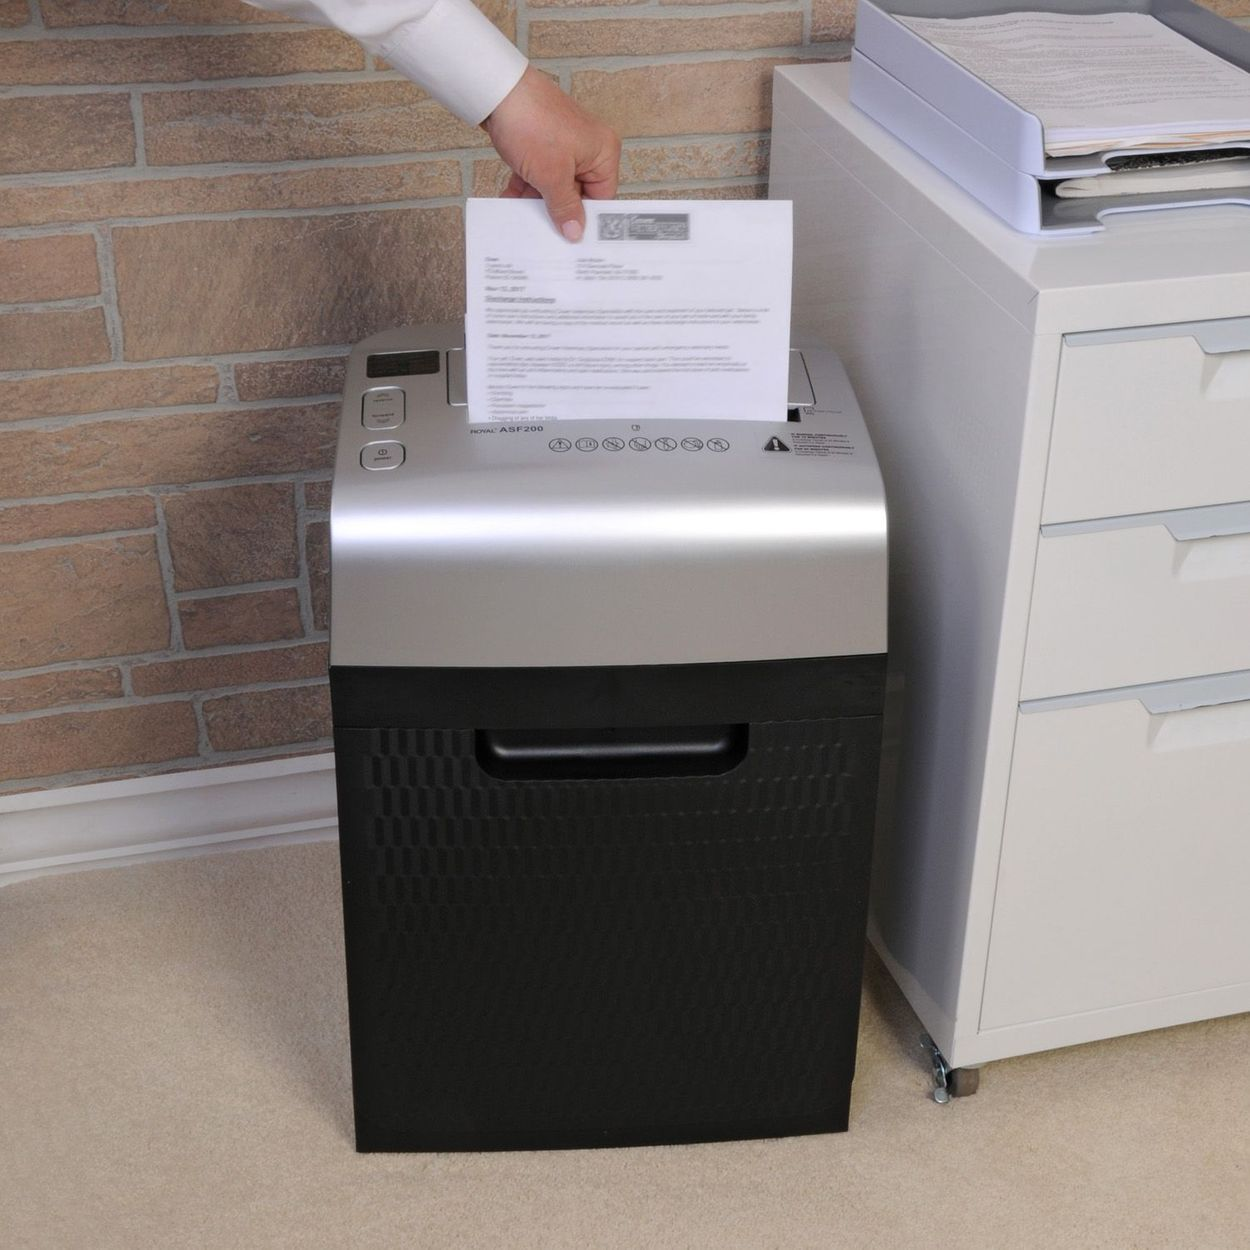 Lifestyle image of unit with hand feeding paper into slot